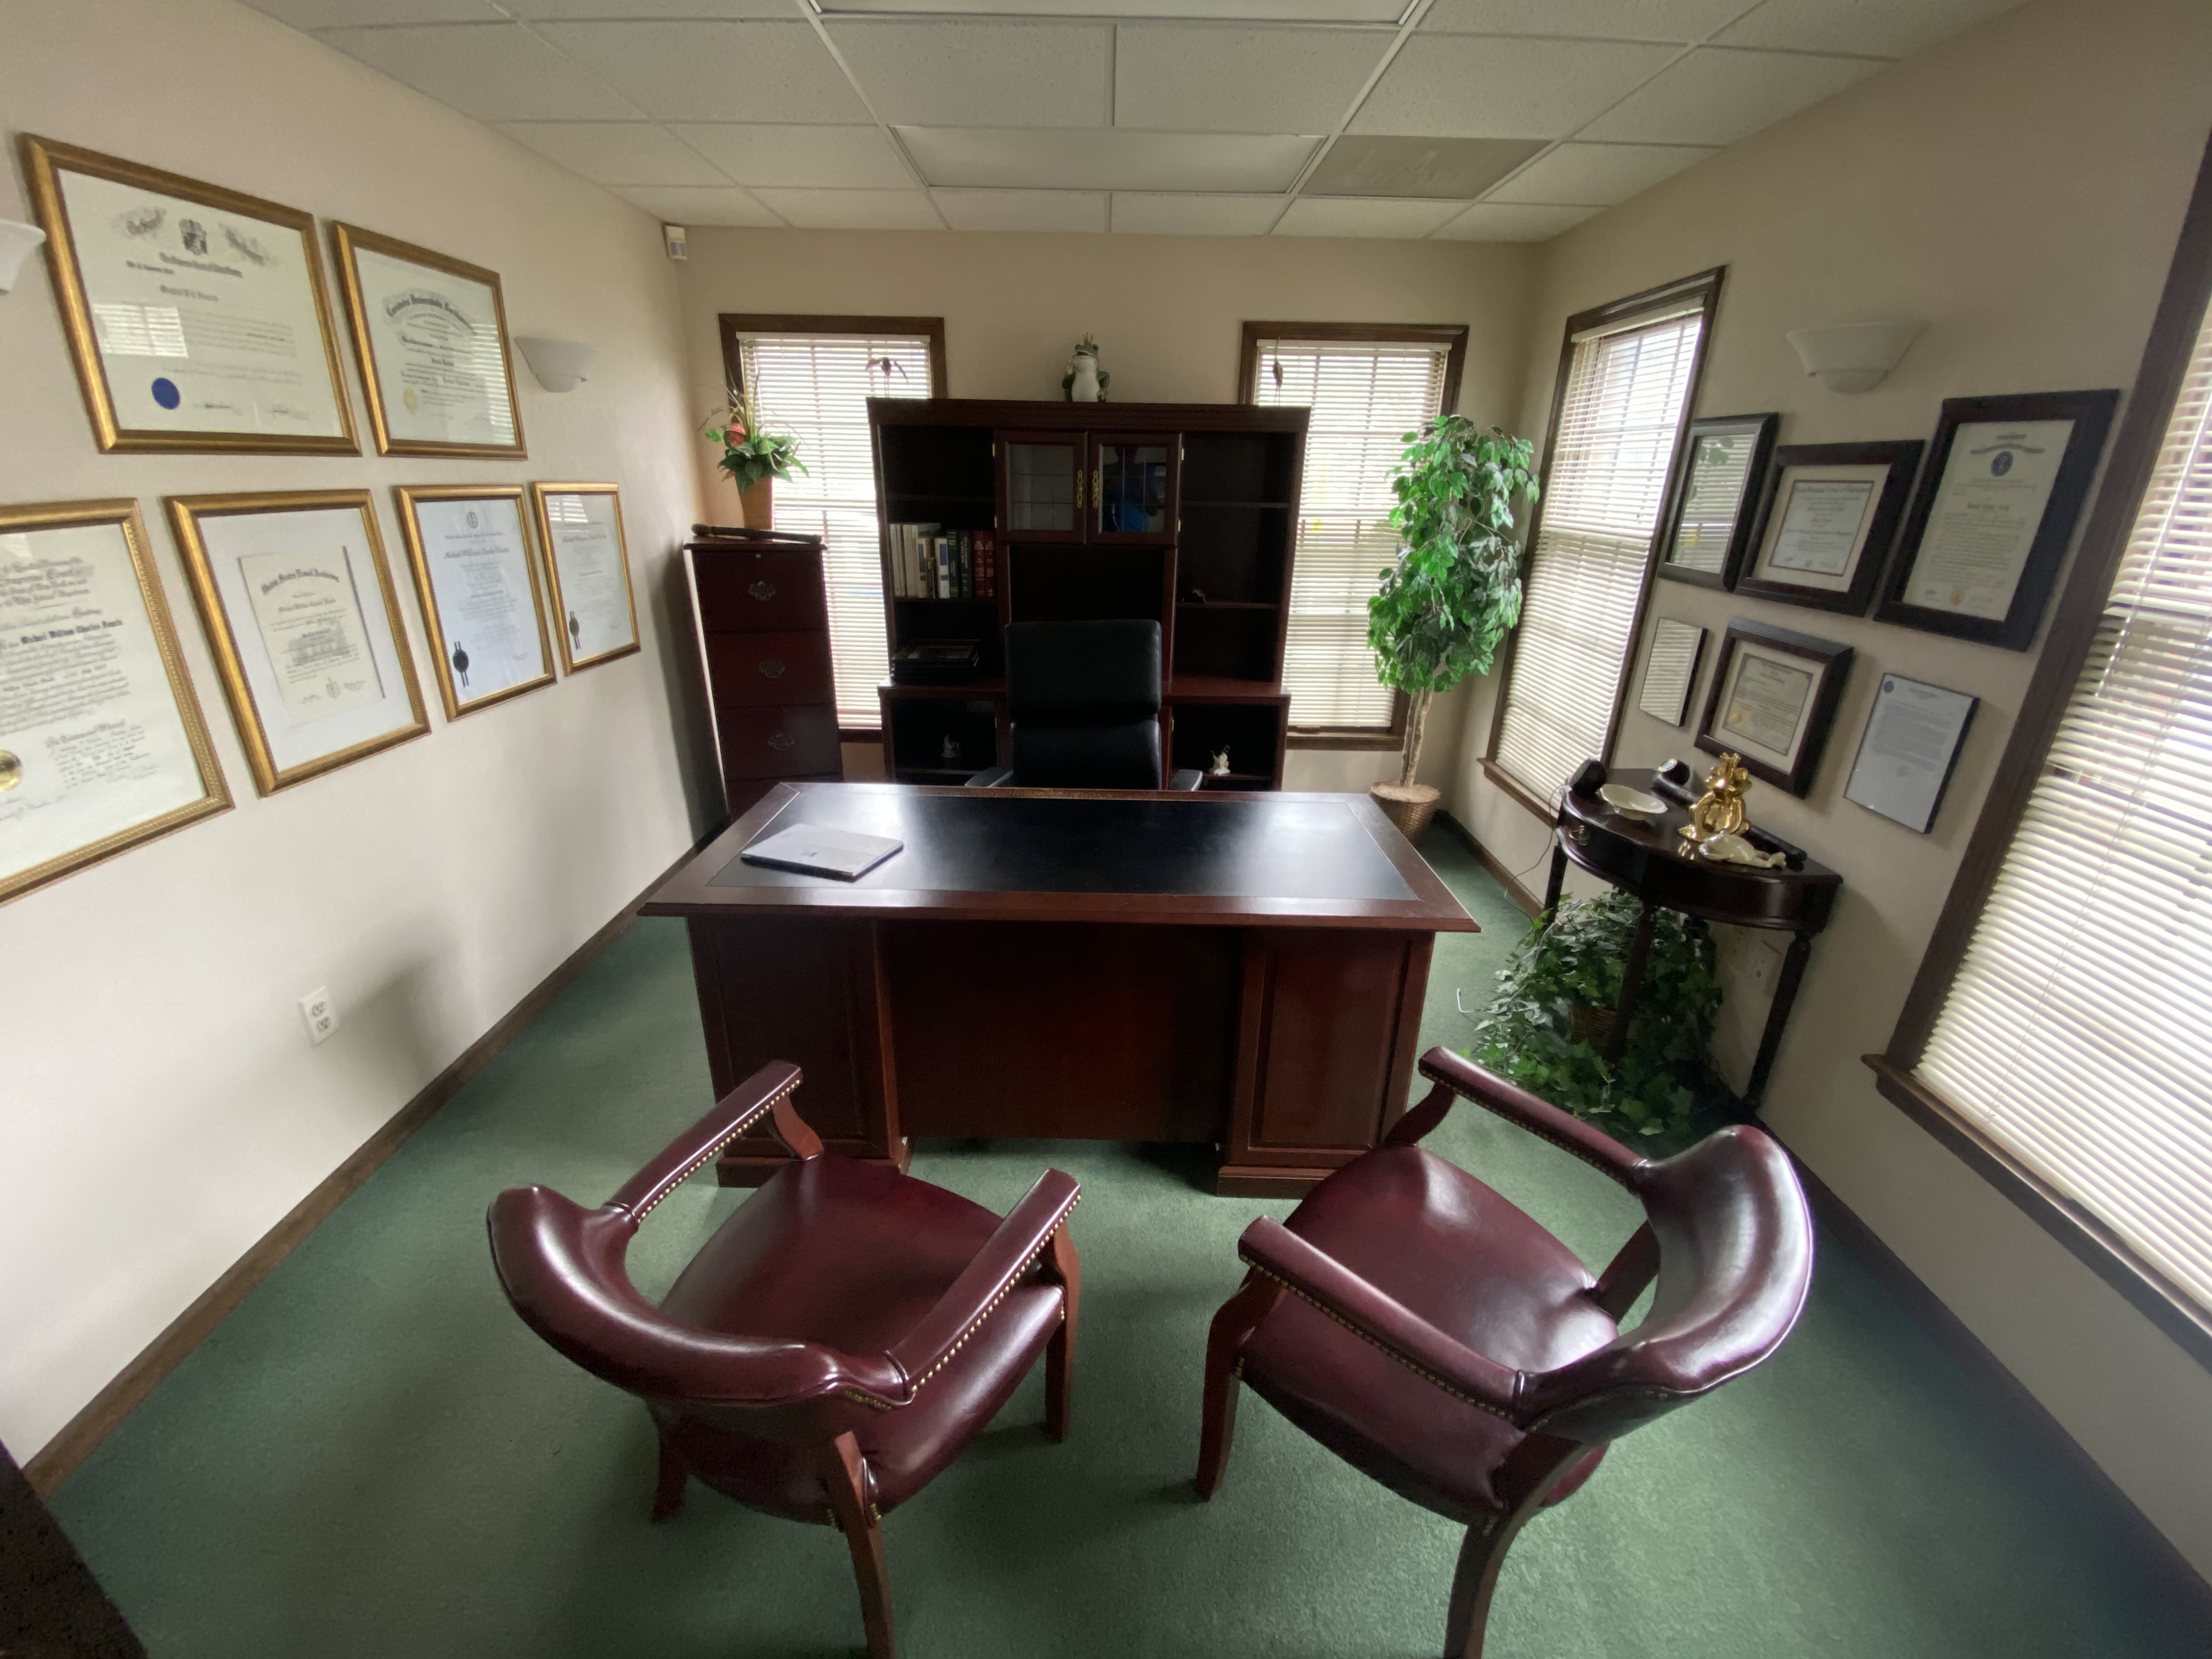 Real Estate Law Office at Fourte International Real Estate in Verona, New Jersey